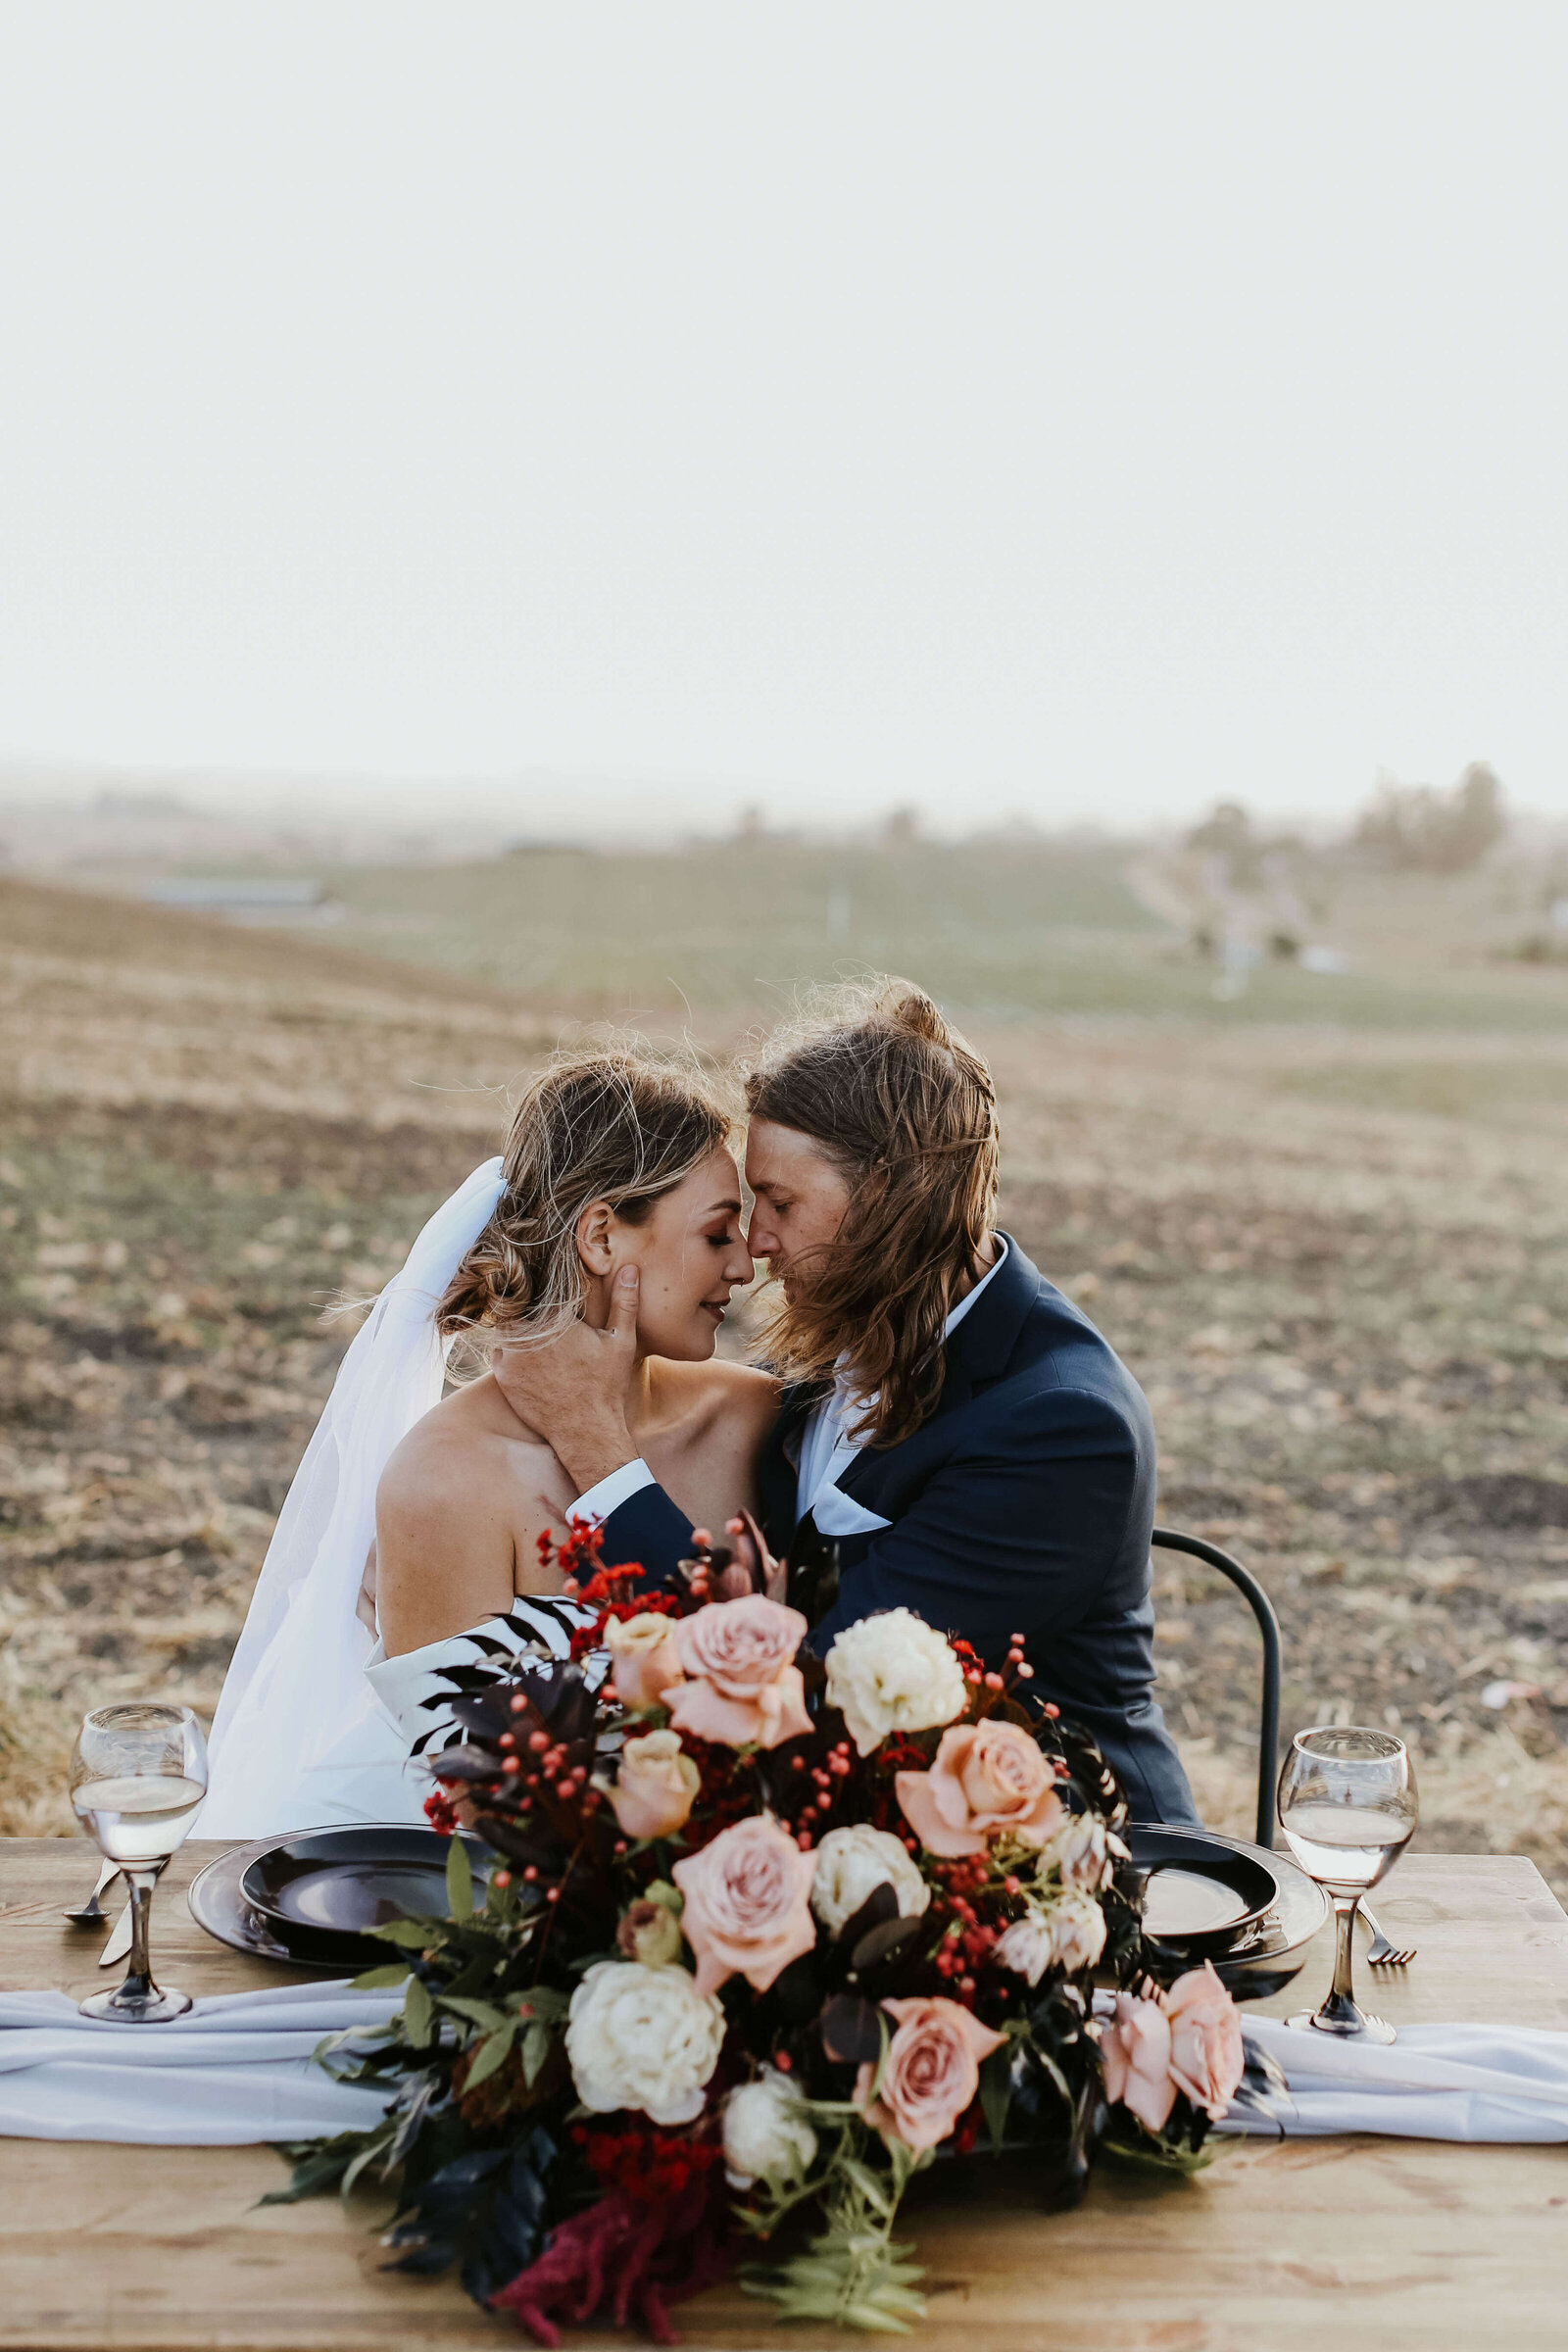 Penngrove-california-elopement-modern-bohemian-sonoma-county-elopement-events-by-gianna-somona-wedding-planner-11